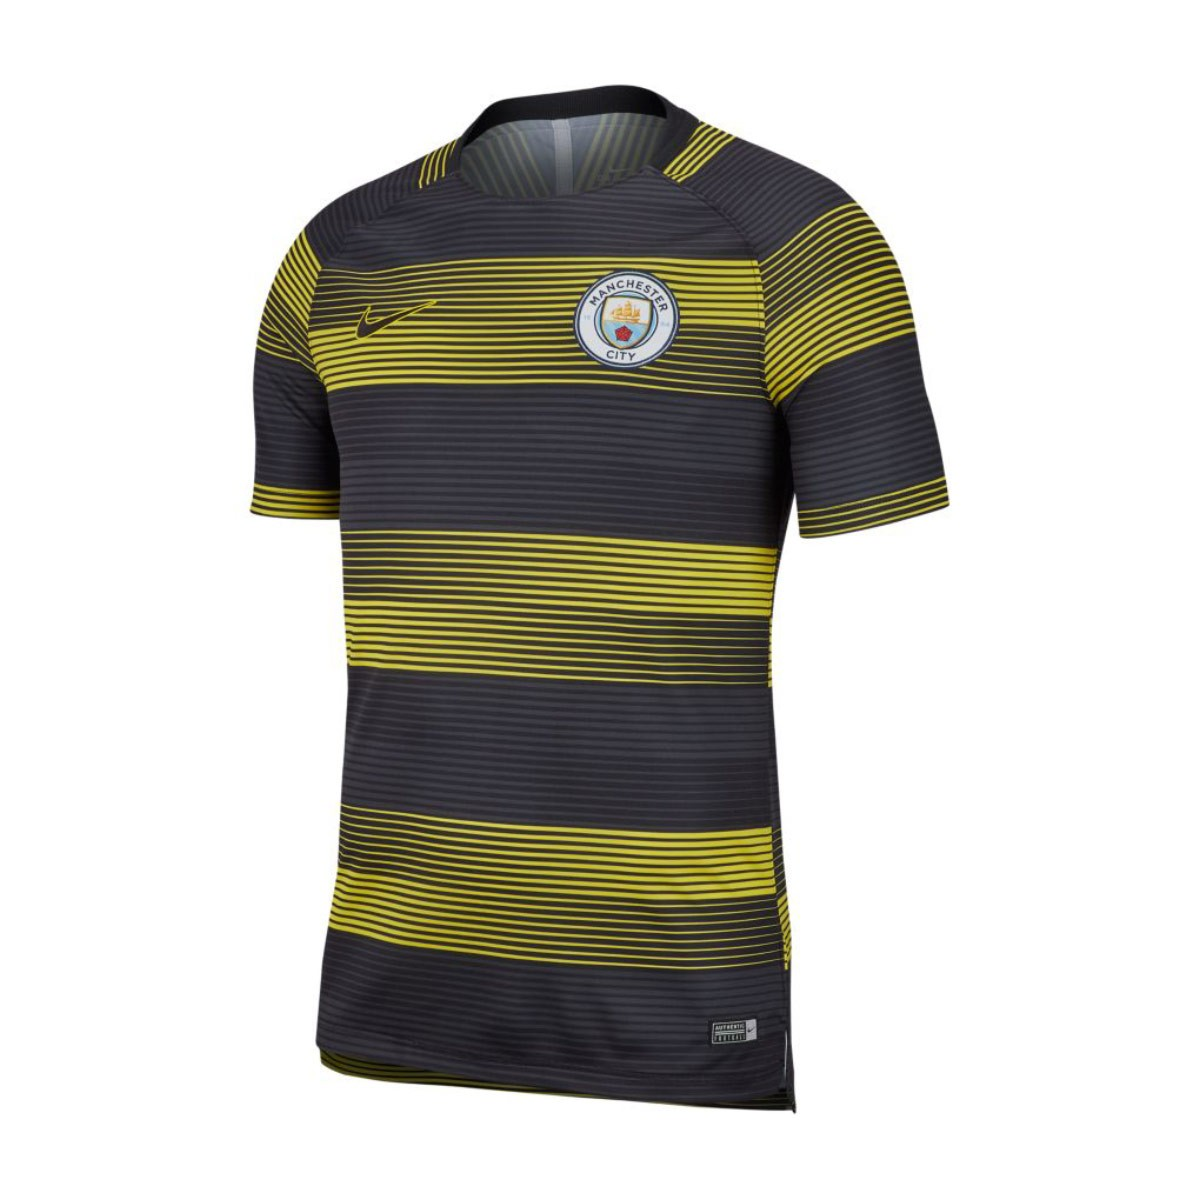 a9b3be4f9 Jersey Nike Manchester City FC Dry Squad TOP SS GX 2 2018-2019 ...